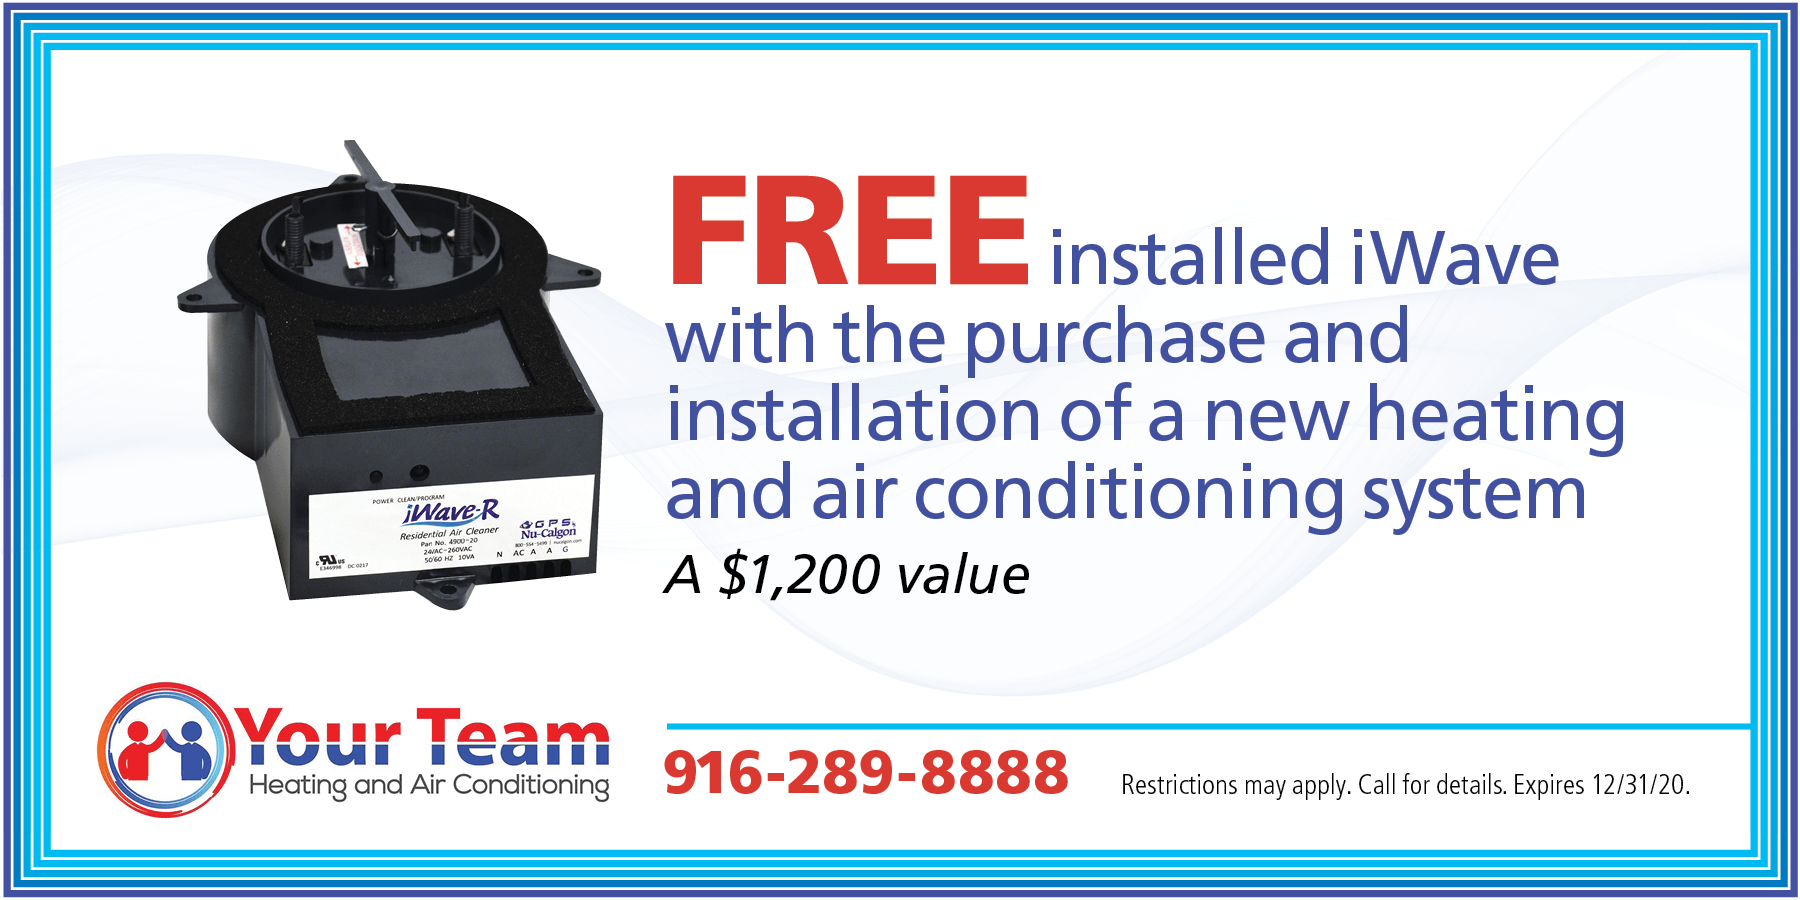 Free iWave System